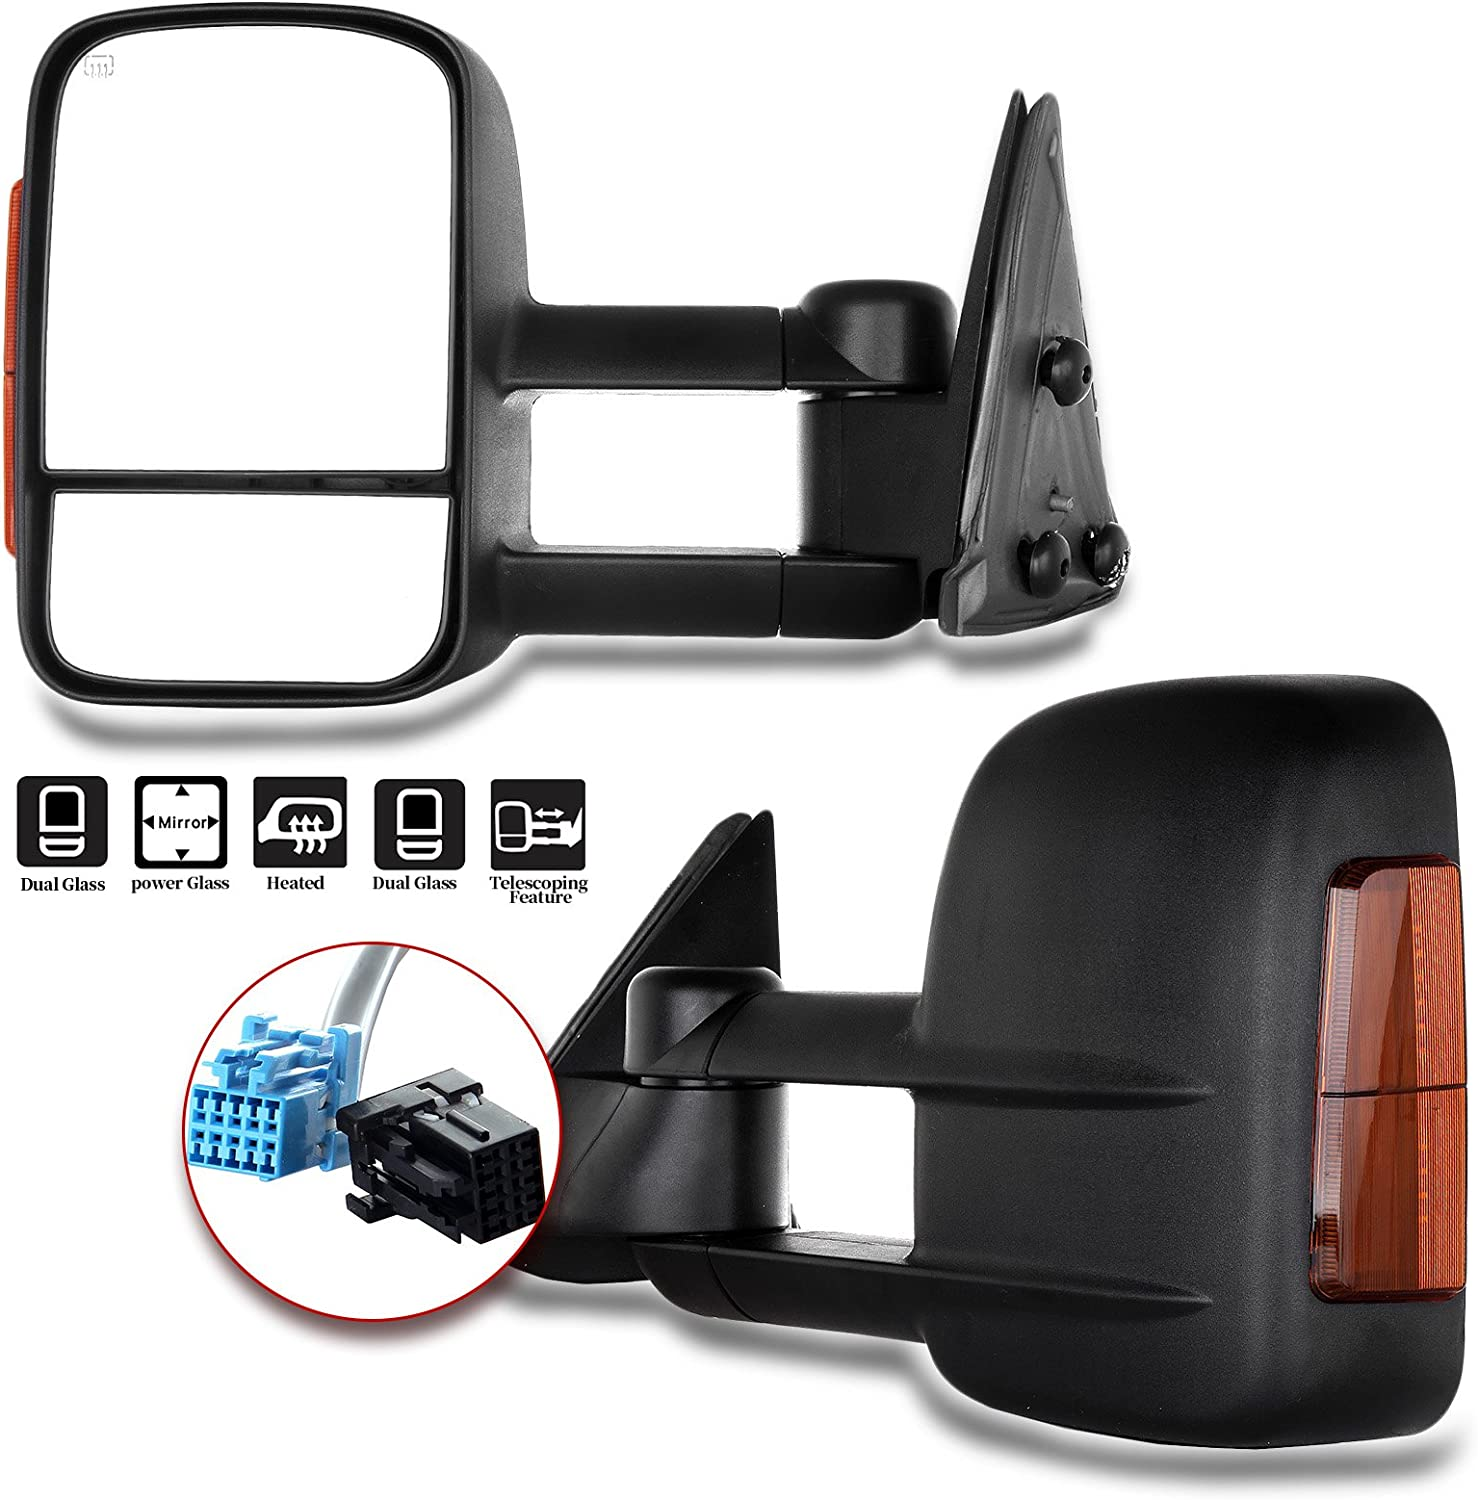 2004 2005 2006 Models 07 Classic Aftermarket Towing Mirrors 2003-2007 Chevy//GMC Silverado//Sierra Power Heated Signal Side Mirror Pair